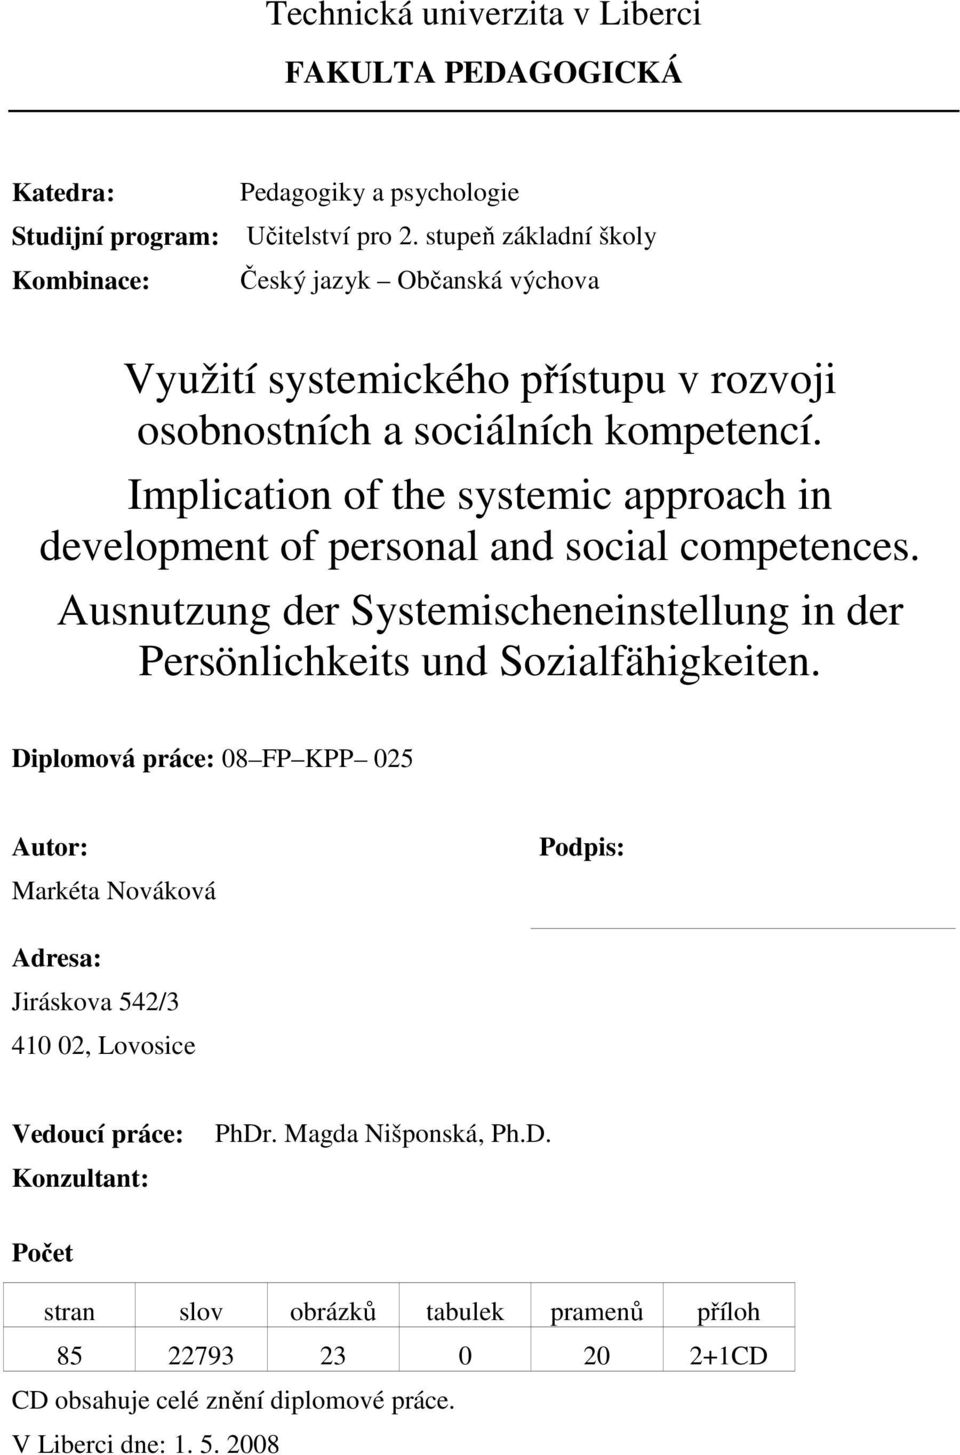 Implication of the systemic approach in development of personal and social competences. Ausnutzung der Systemischeneinstellung in der Persönlichkeits und Sozialfähigkeiten.